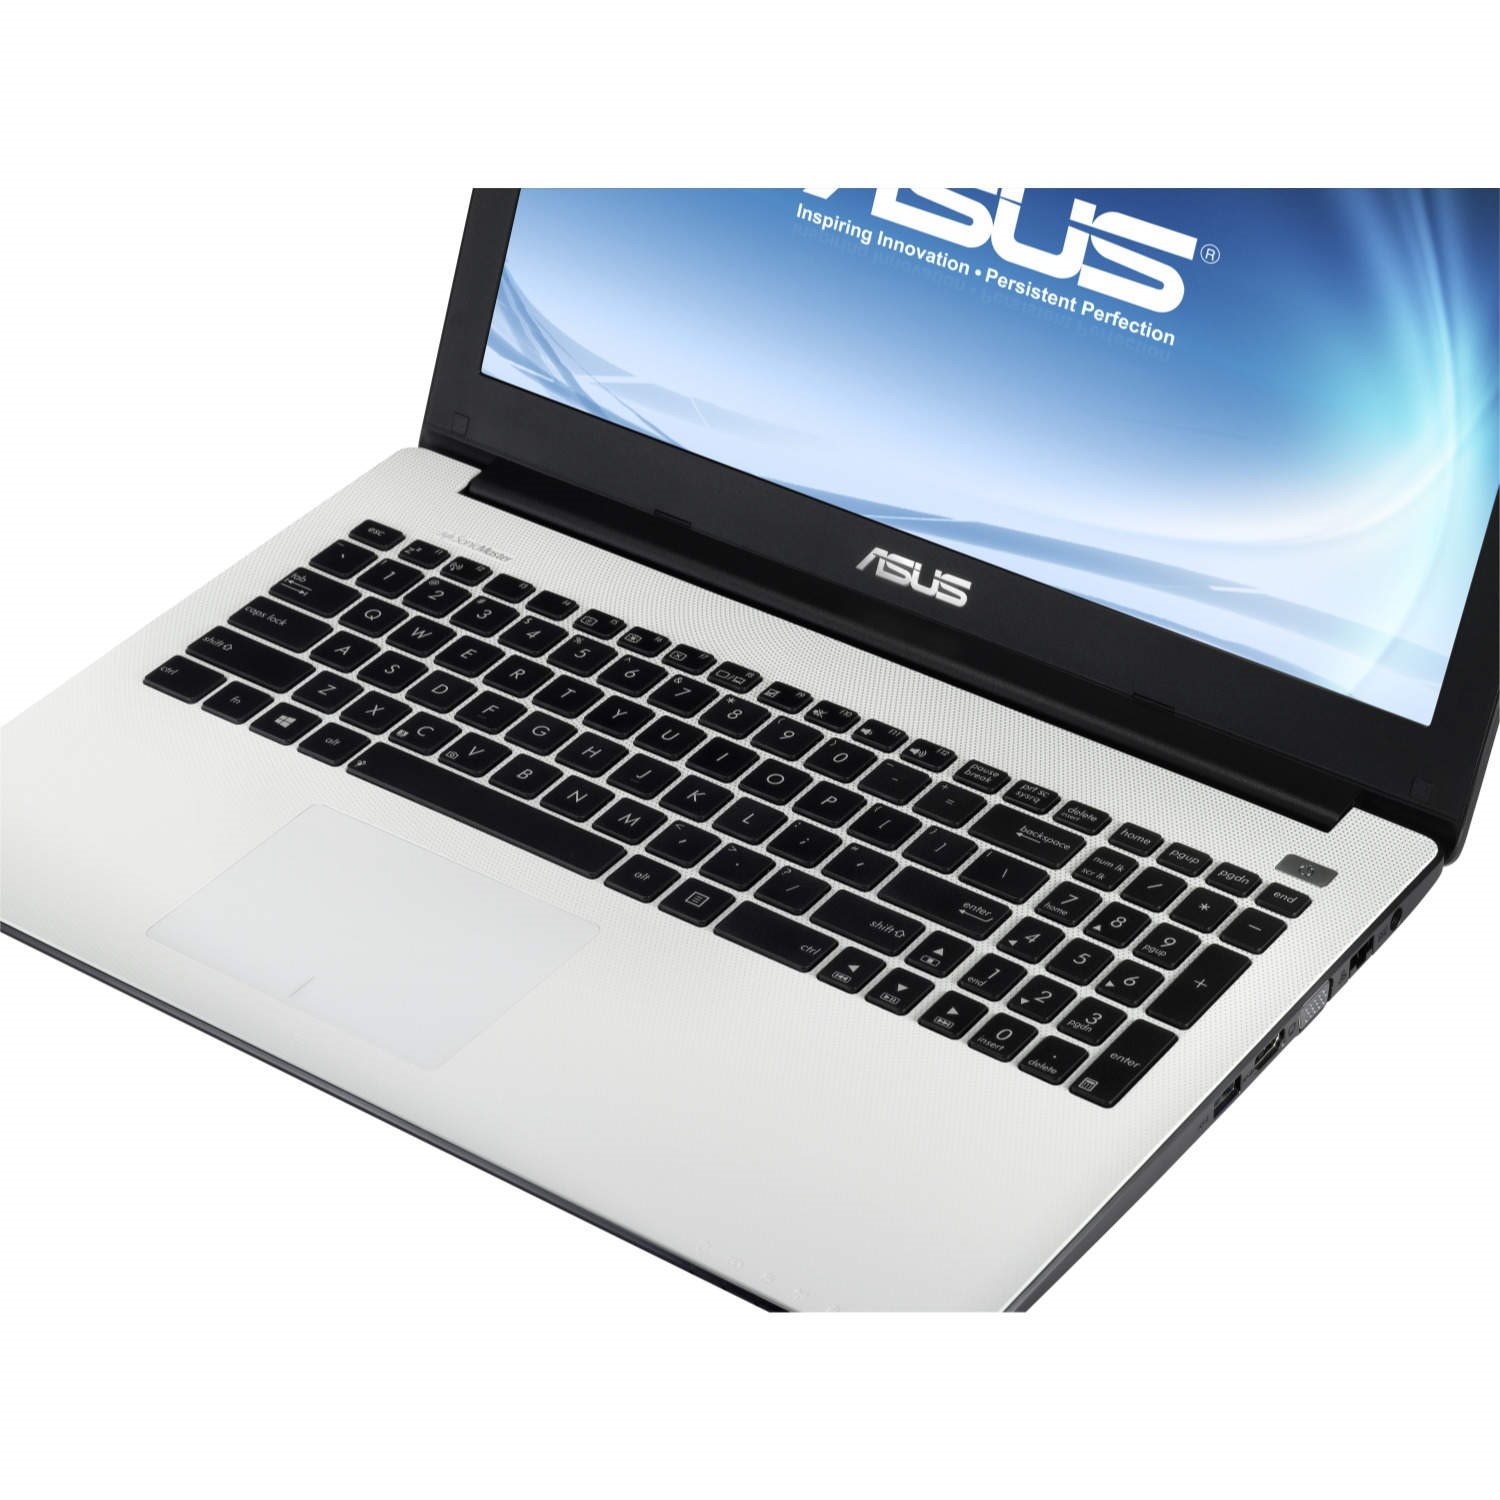 ASUS X502CA NOTEBOOK DRIVERS FOR WINDOWS 8